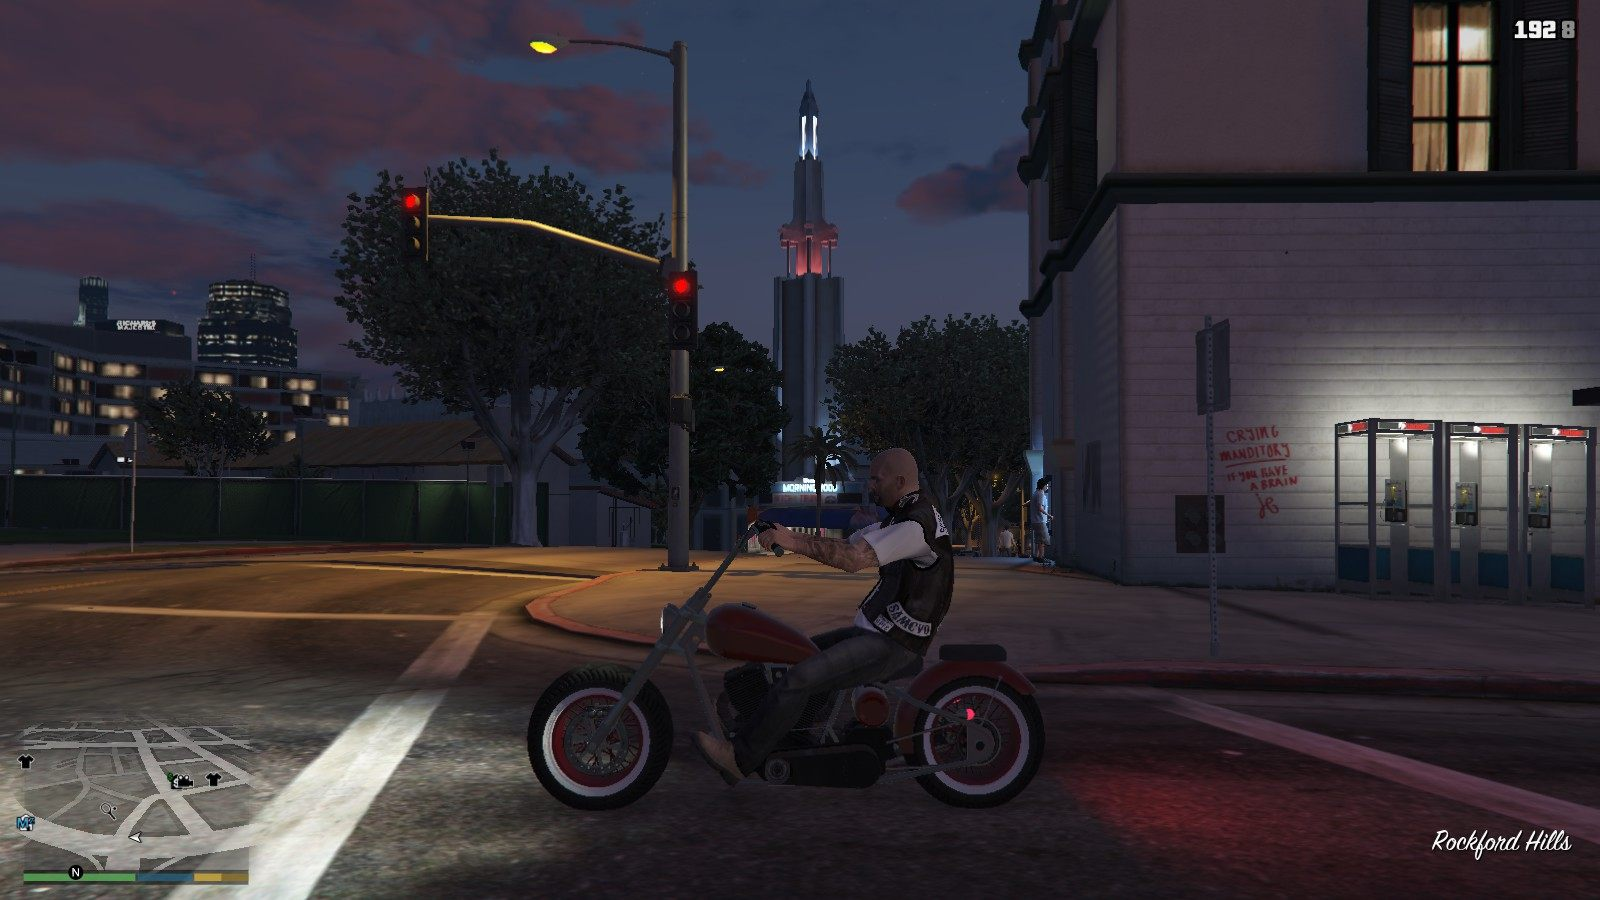 Biker Shirt Sons Of Anarchy GTA5 Mods (6)